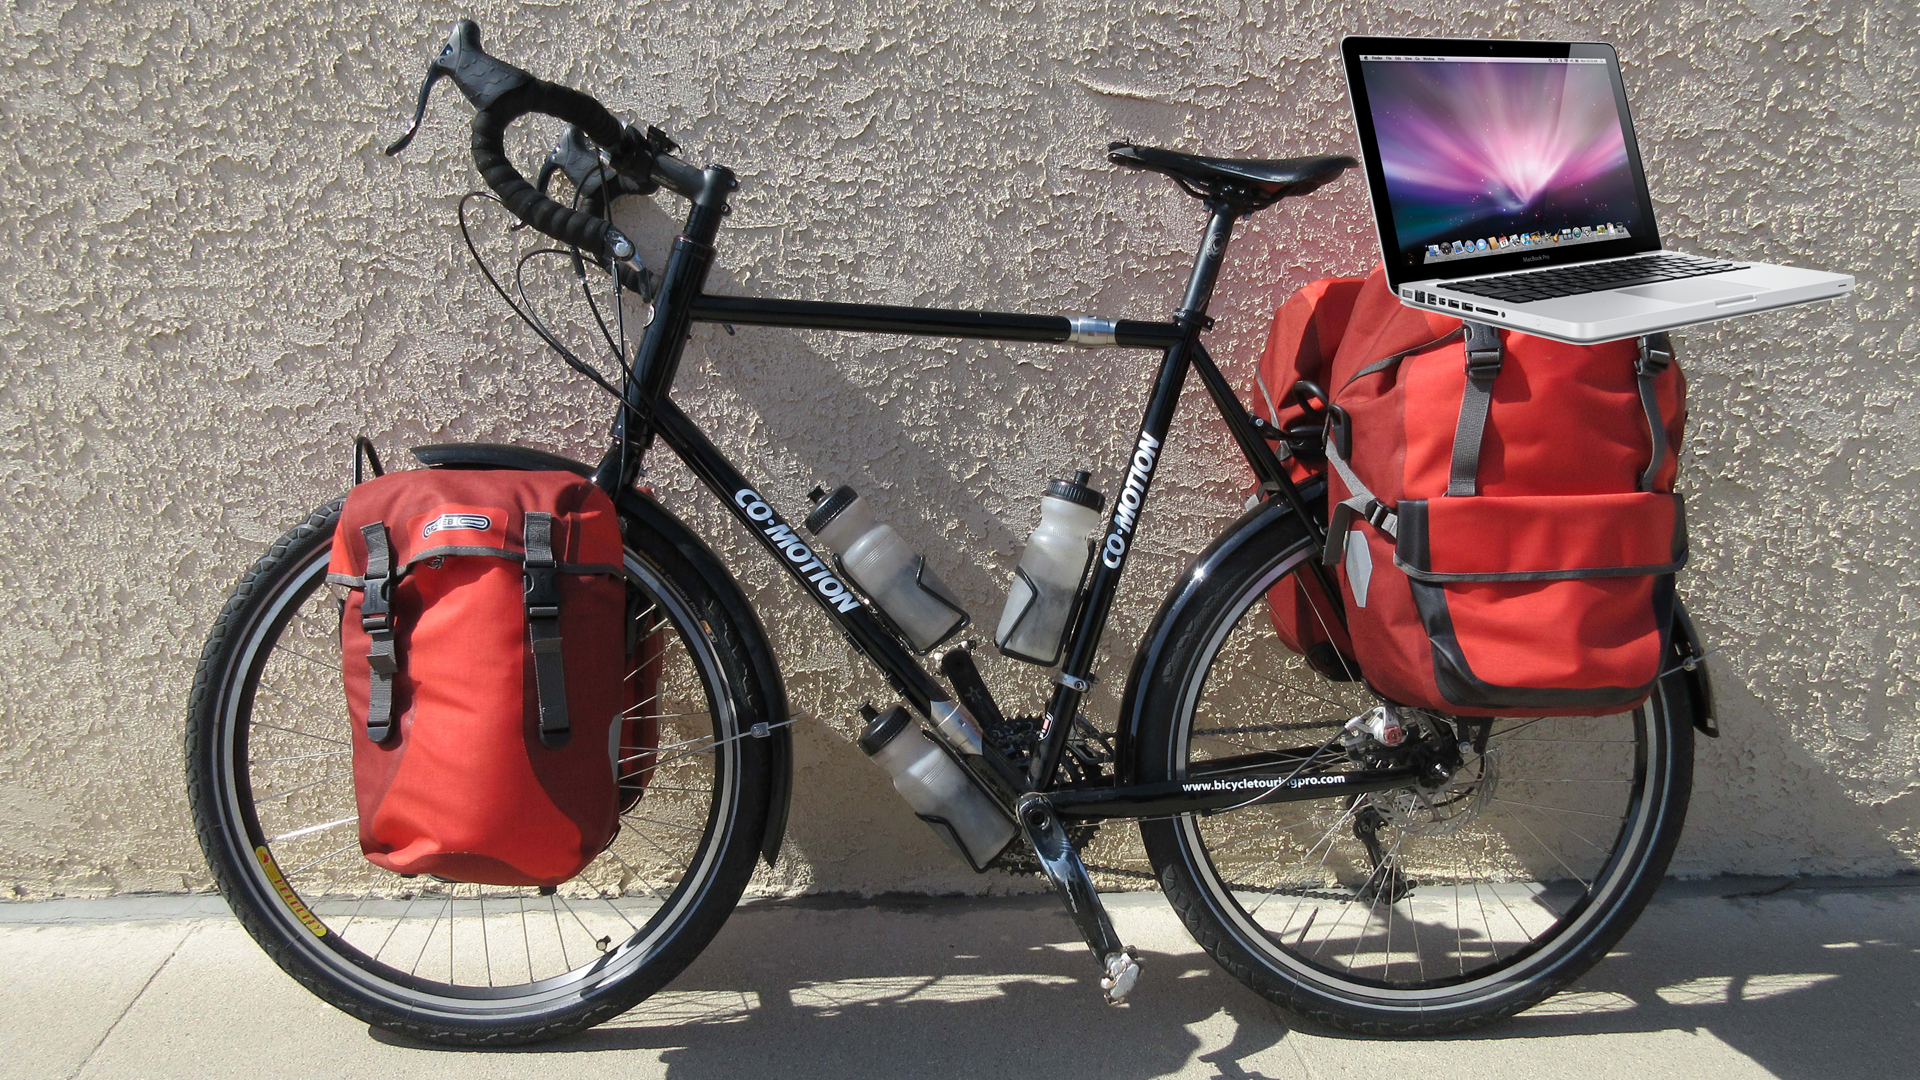 How to Safely Carry a Laptop Computer on Your Bicycle